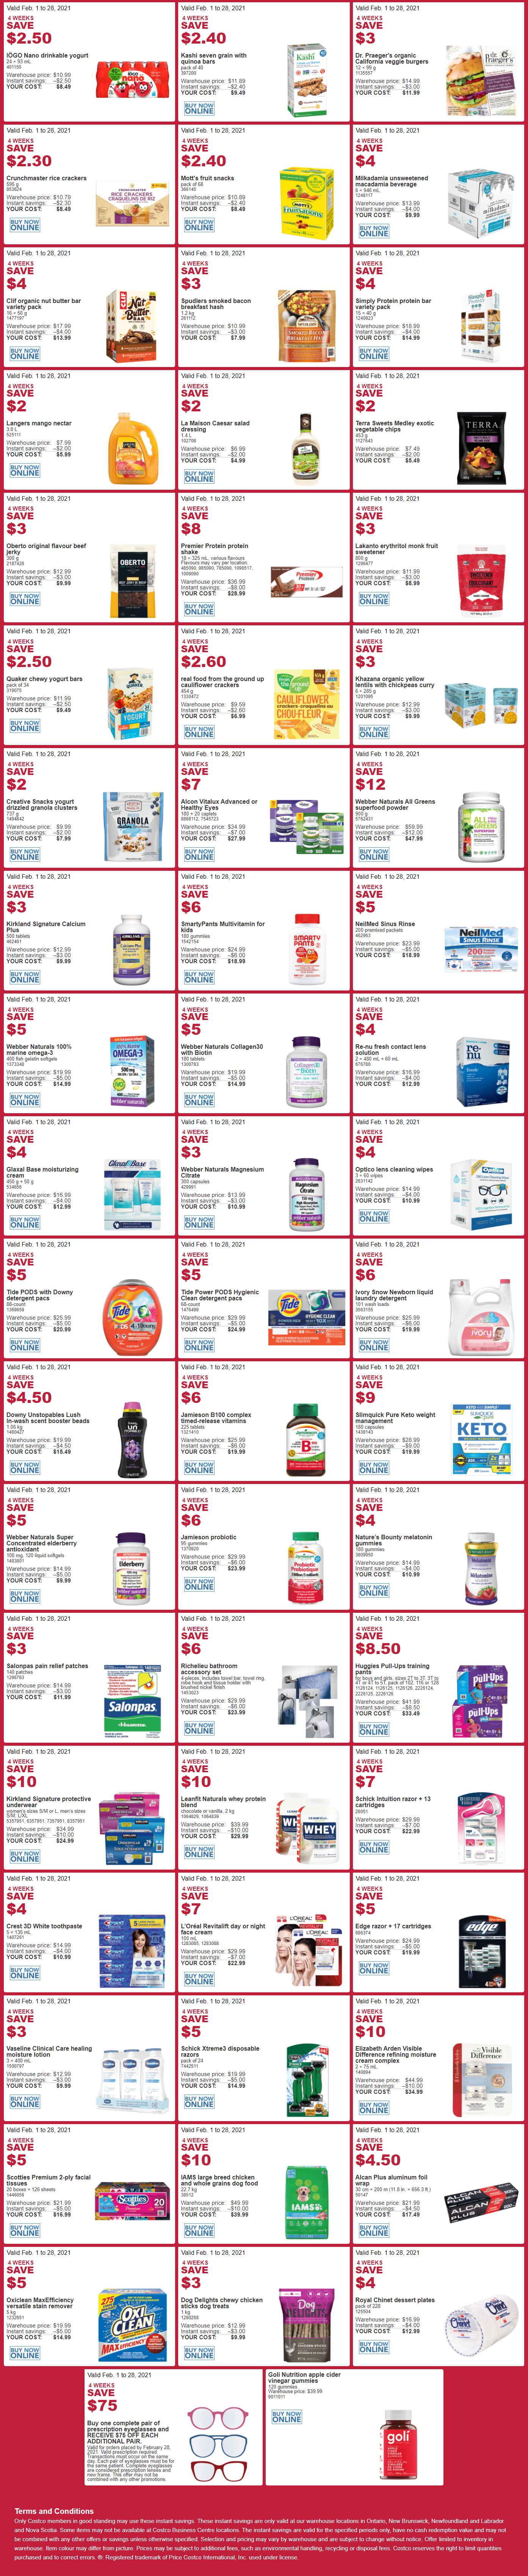 Costco - Monthly Savings - Page 3